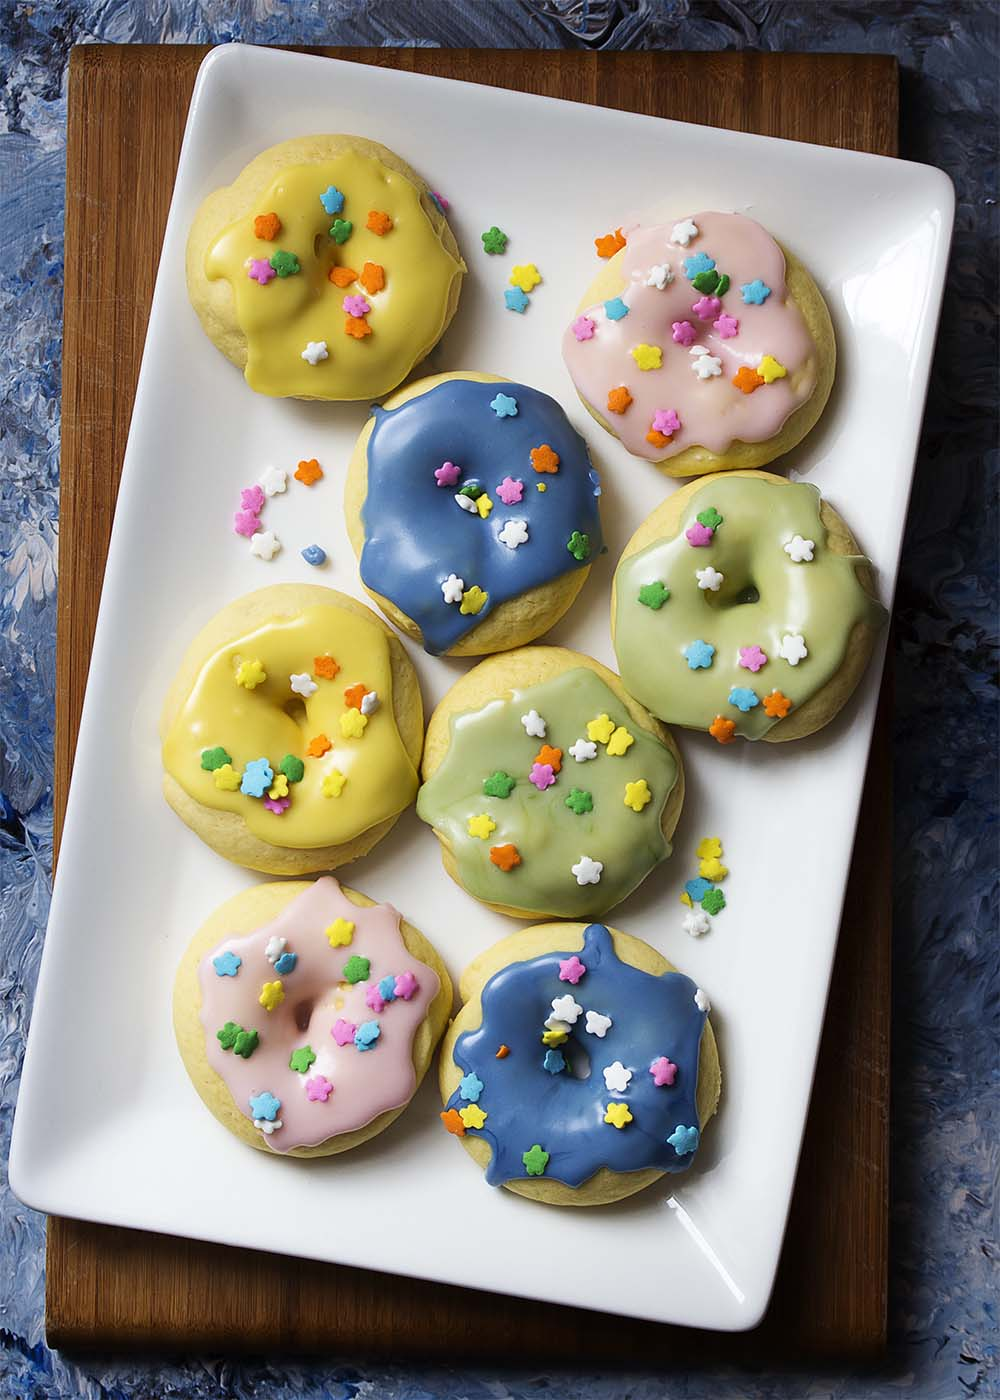 Top view of a platter of several glazed Italian Easter cookies all covered in colorful flower sprinkles.